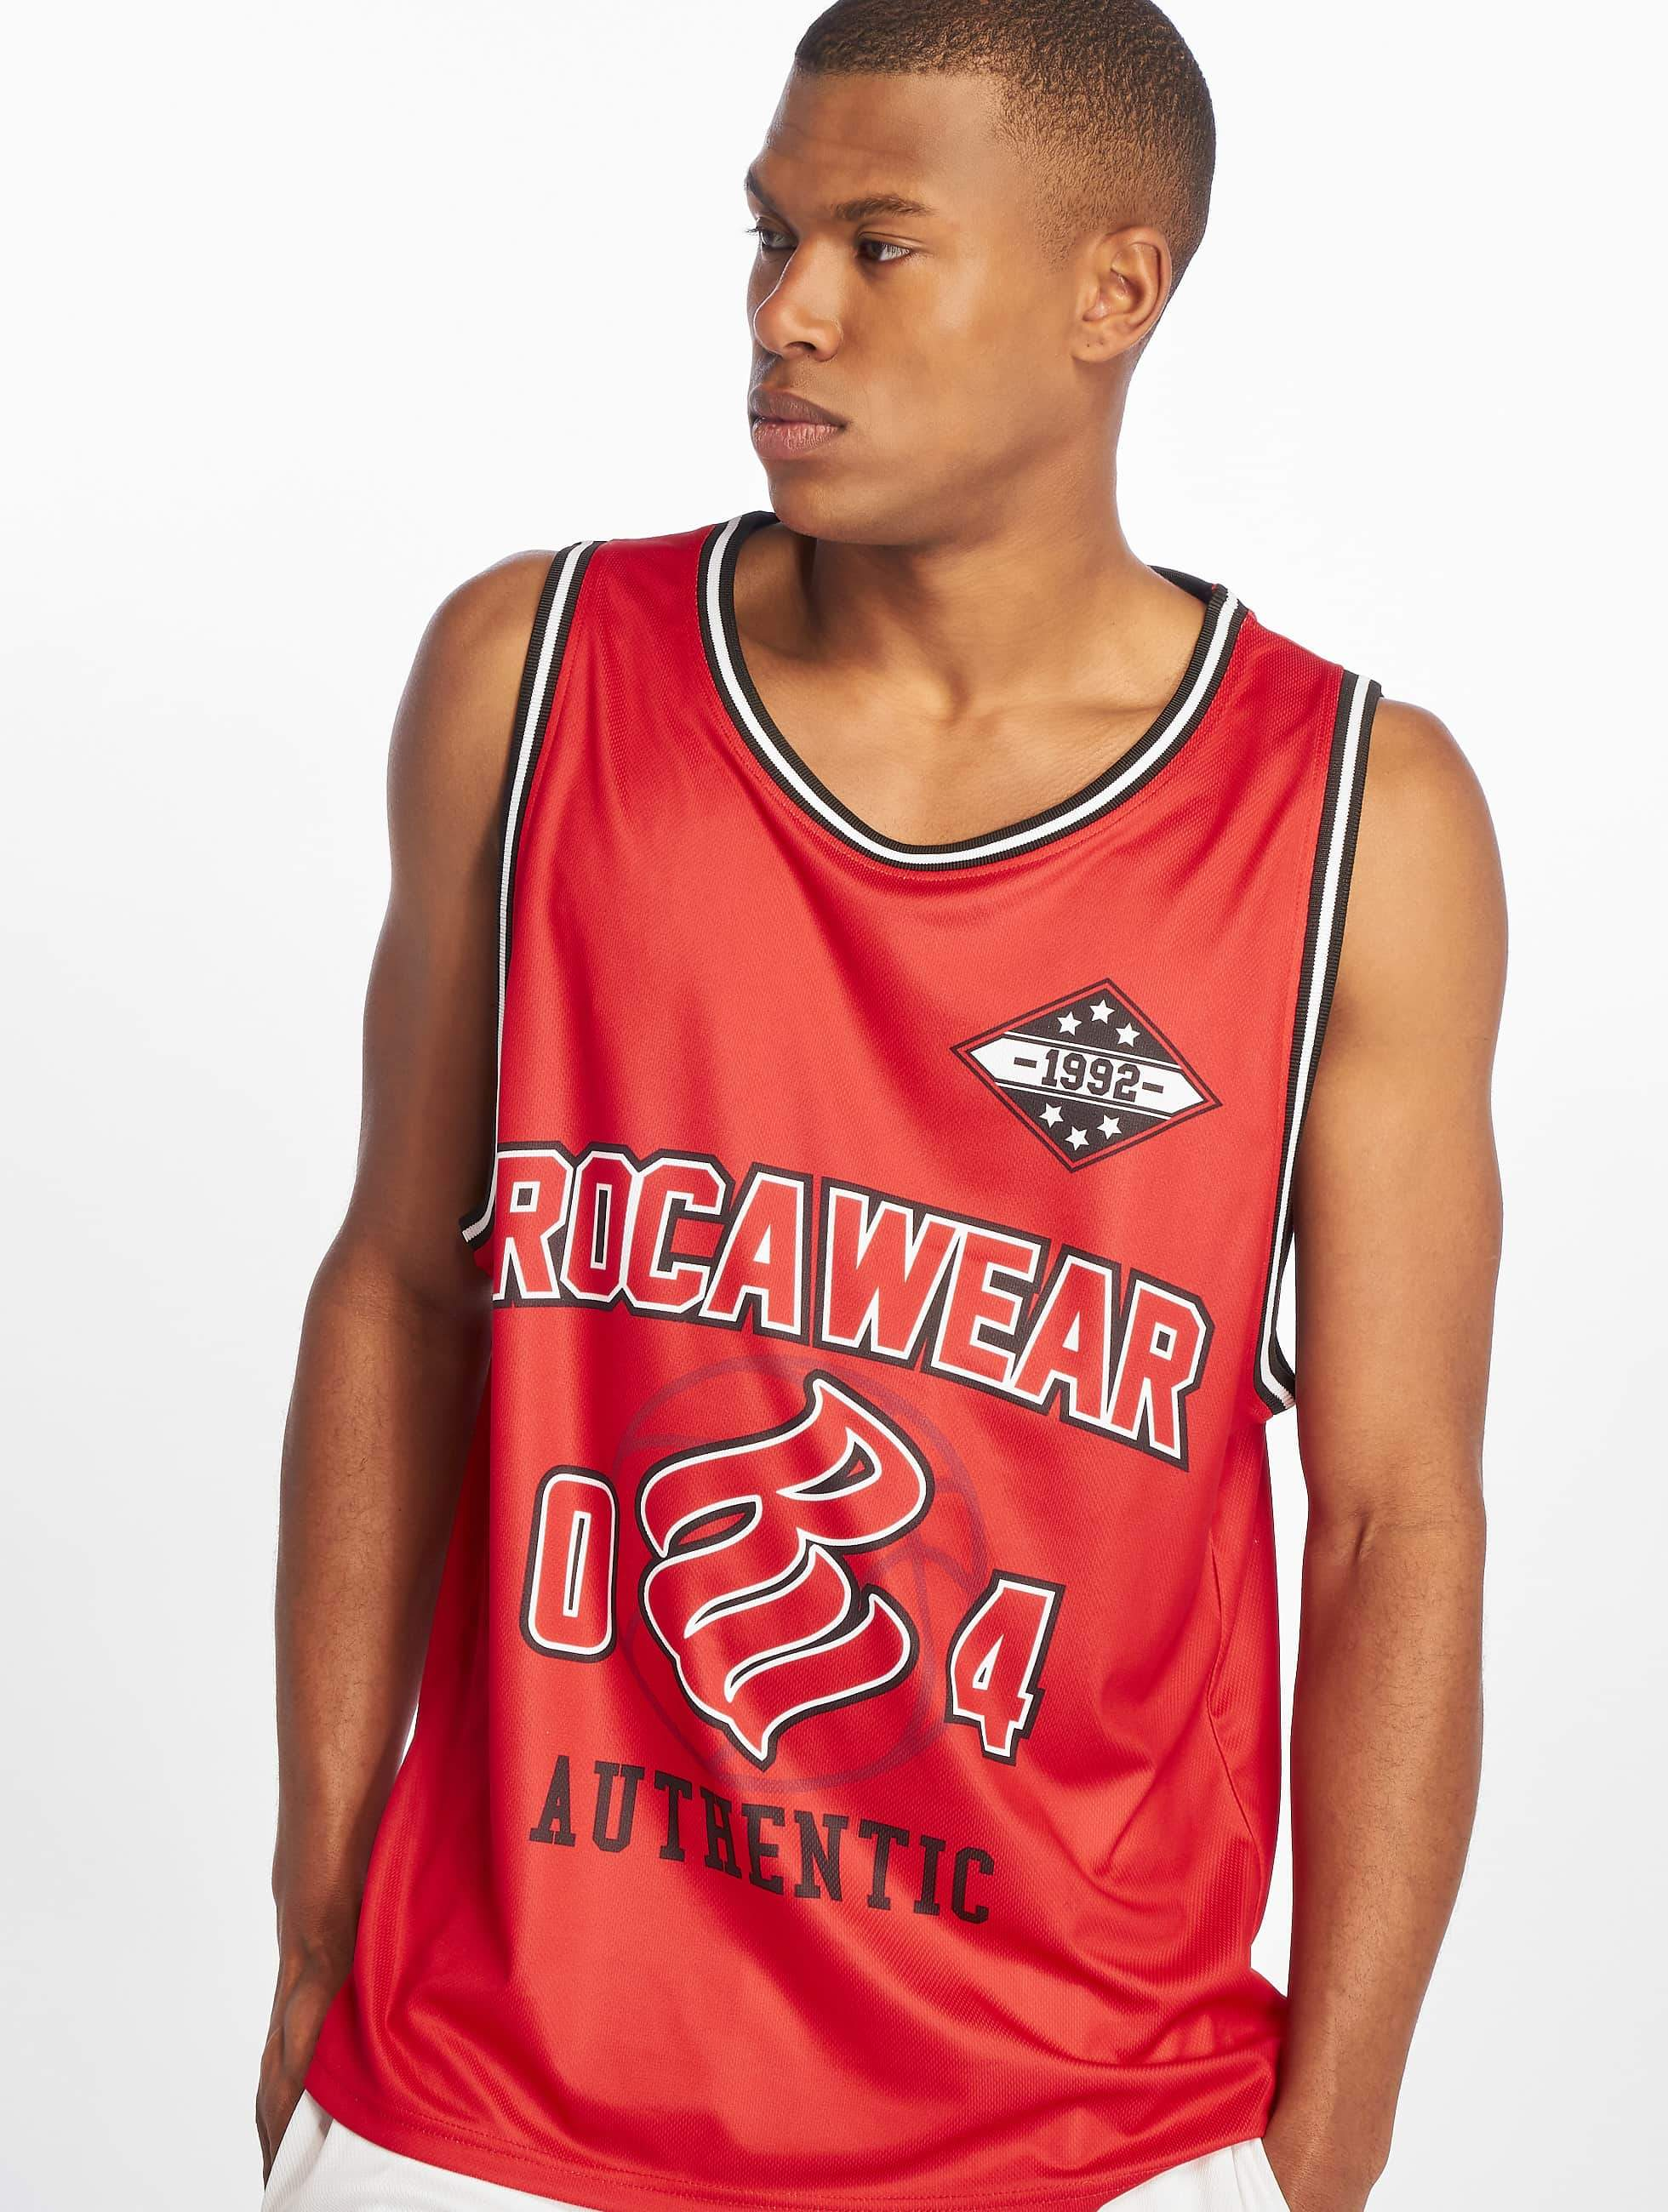 Rocawear Männer Tank Tops Authentic in rot